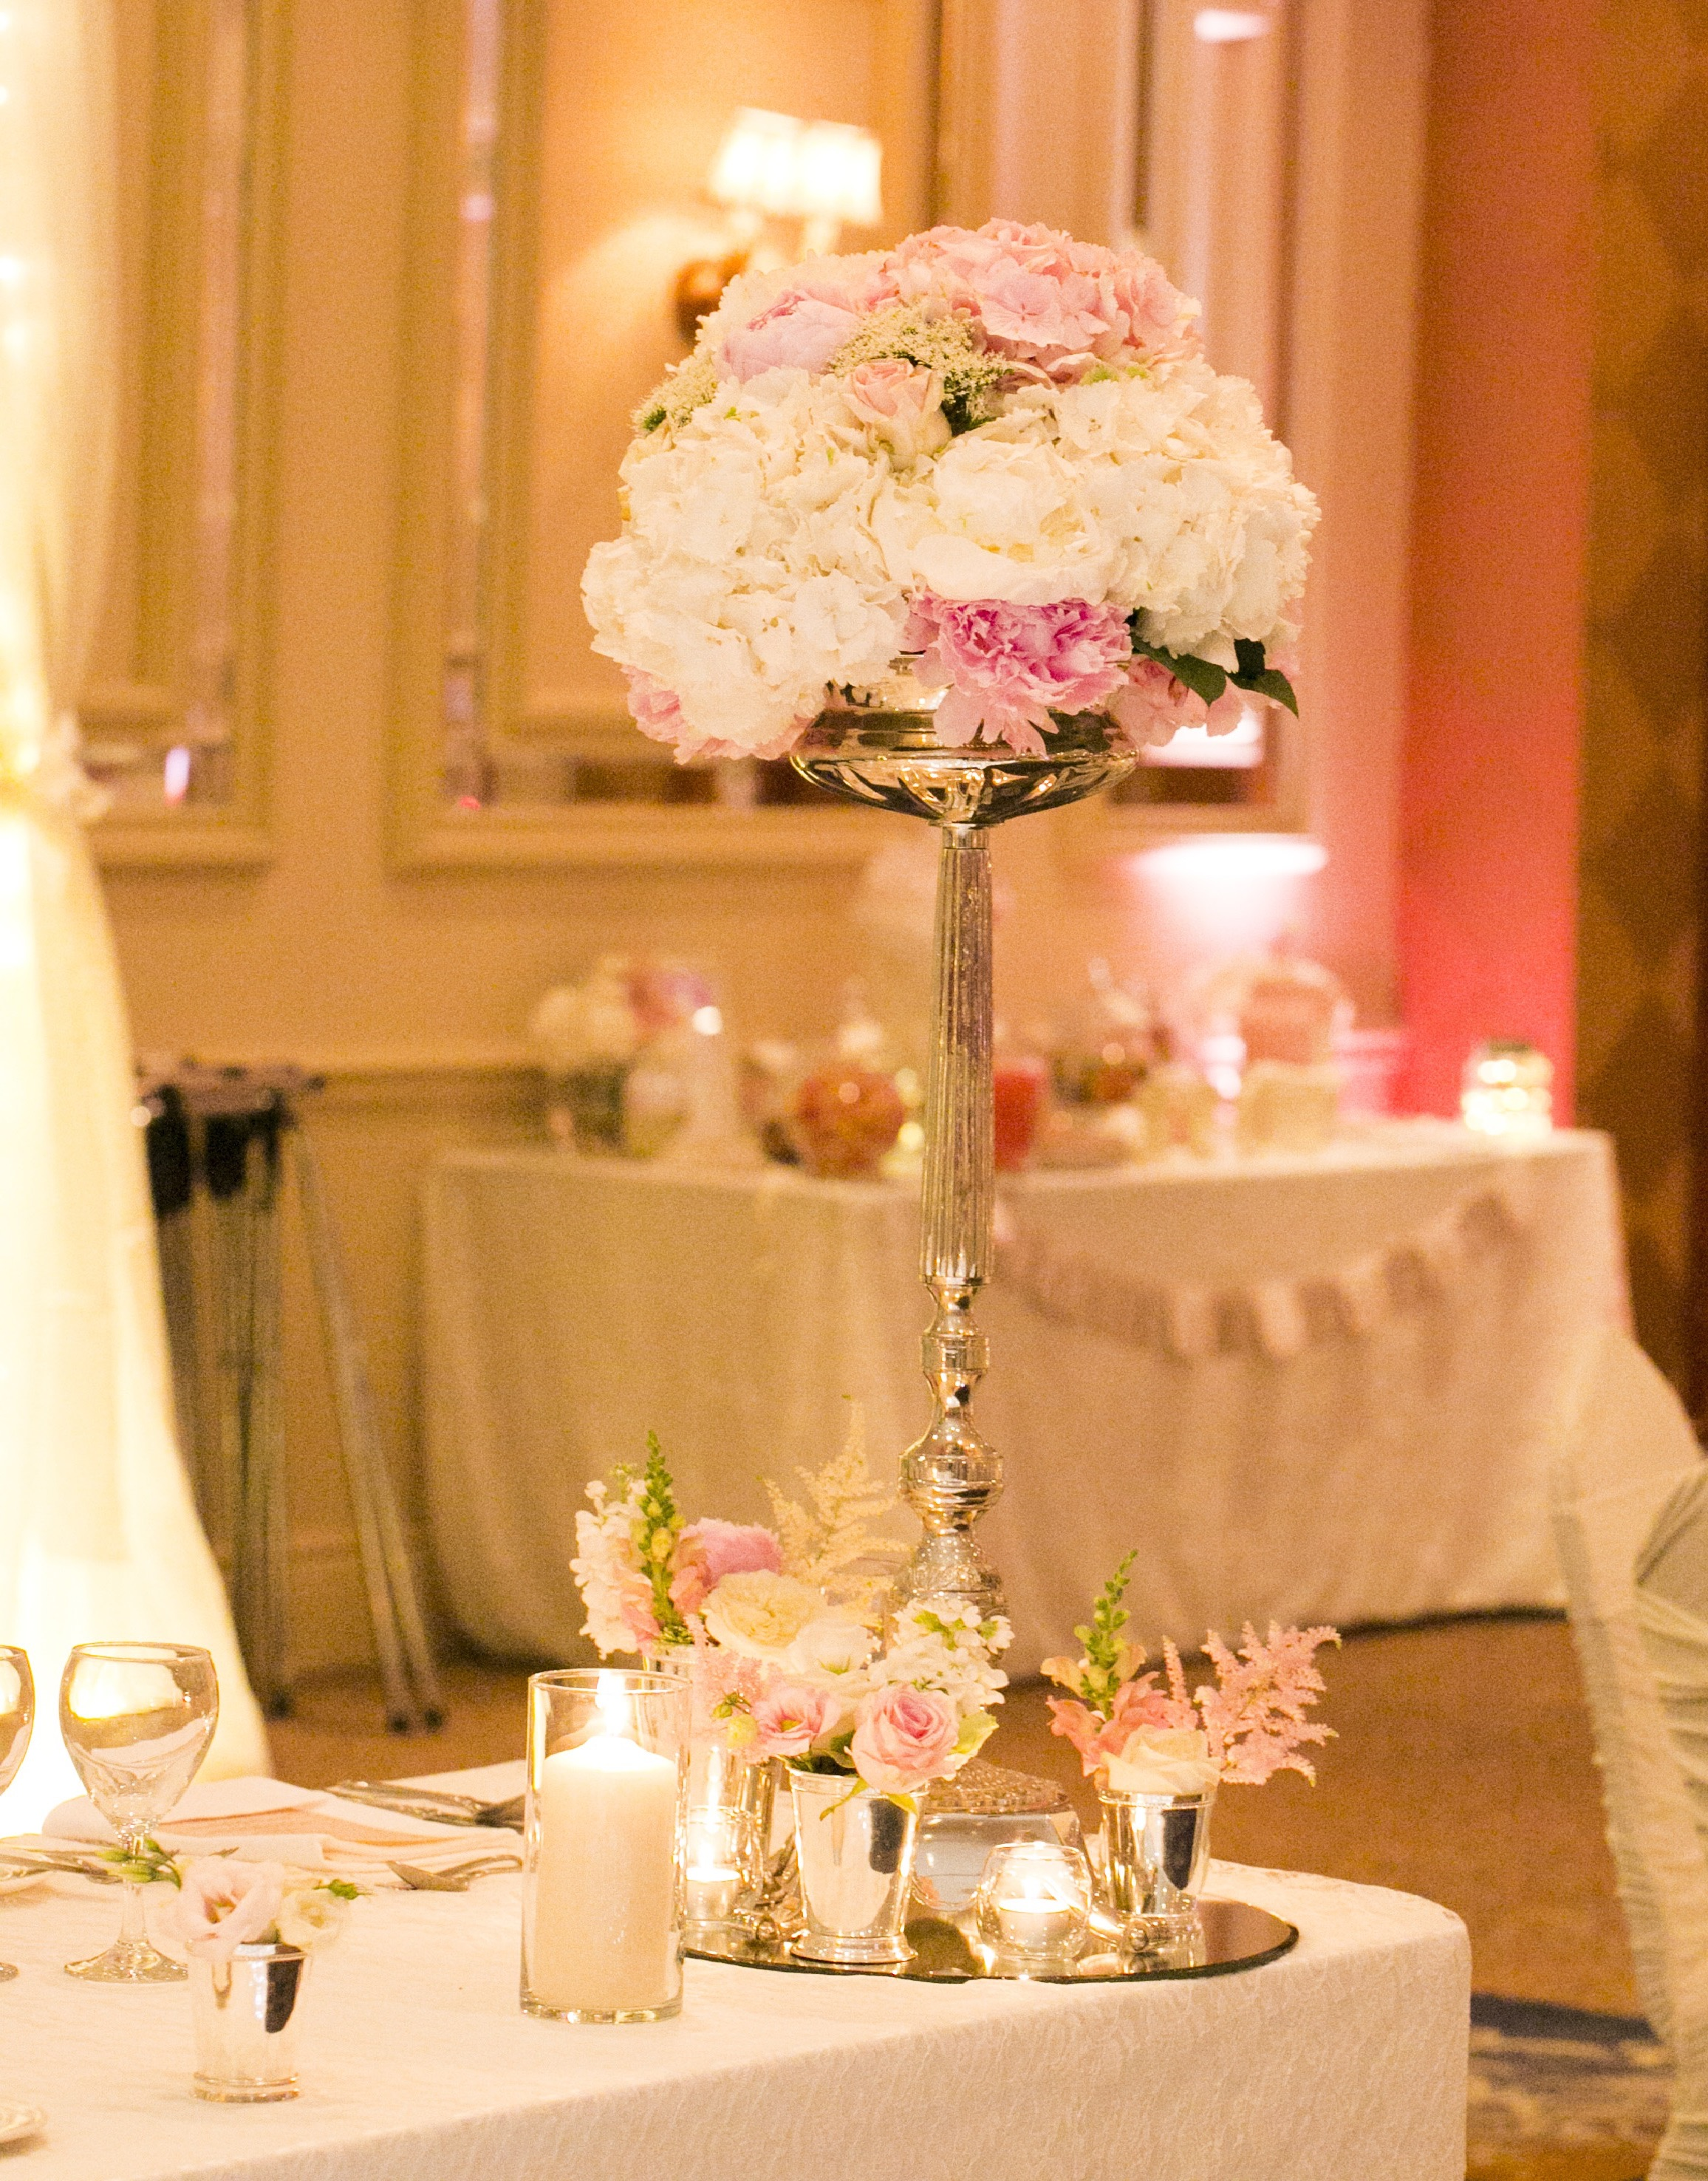 Elegant Single Stemmed Floral Wedding Centerpieces With High Tealights (Image 7 of 12)